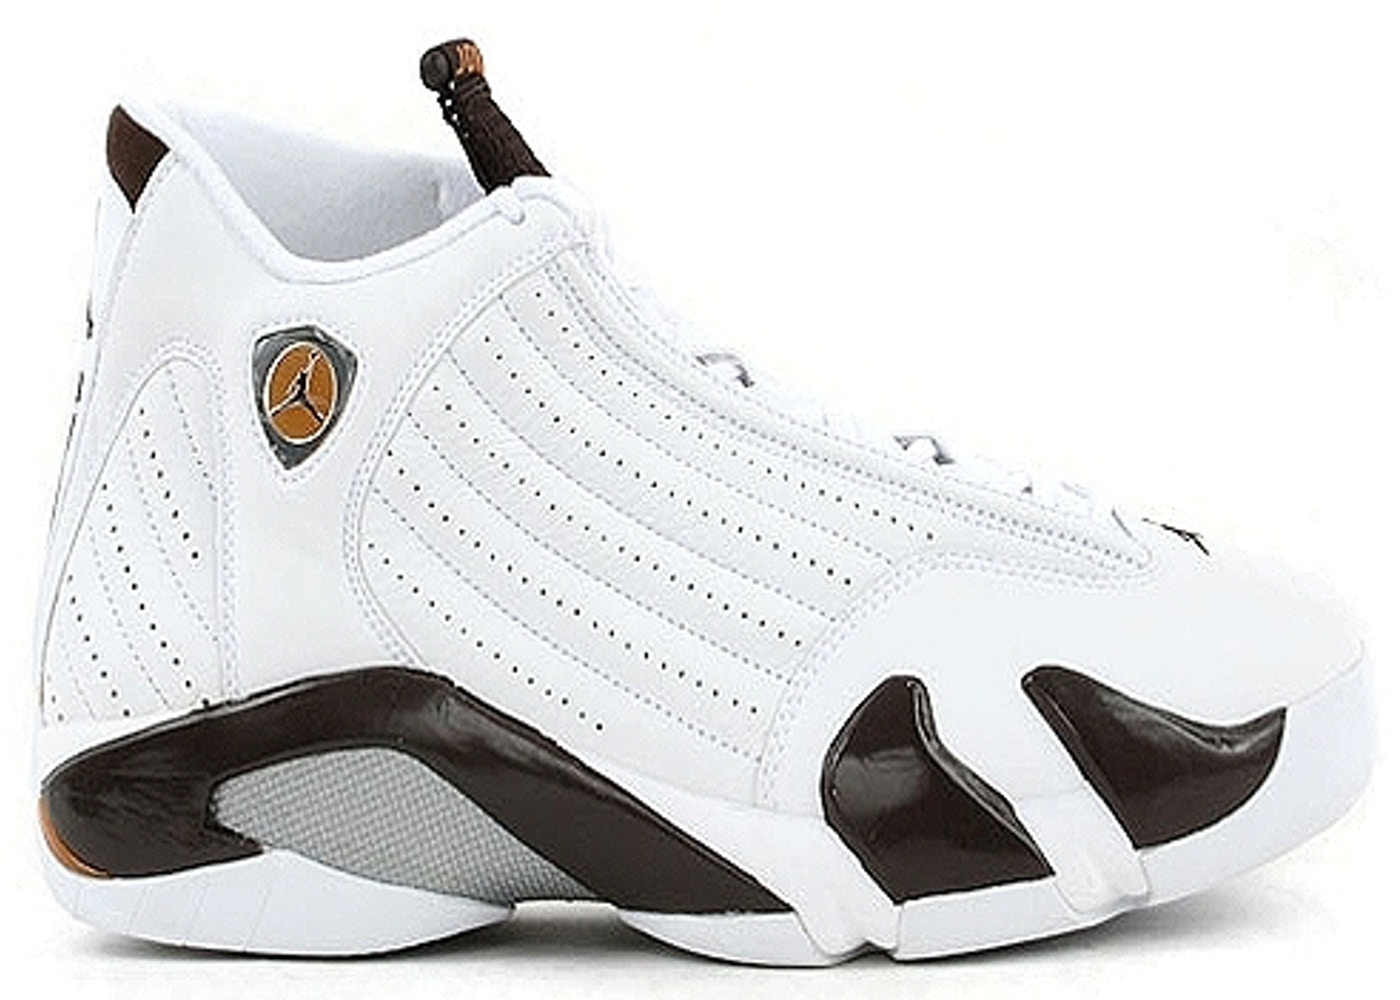 cheaper a419a 7a86d Air Jordan 14 Shoes - Price Premium